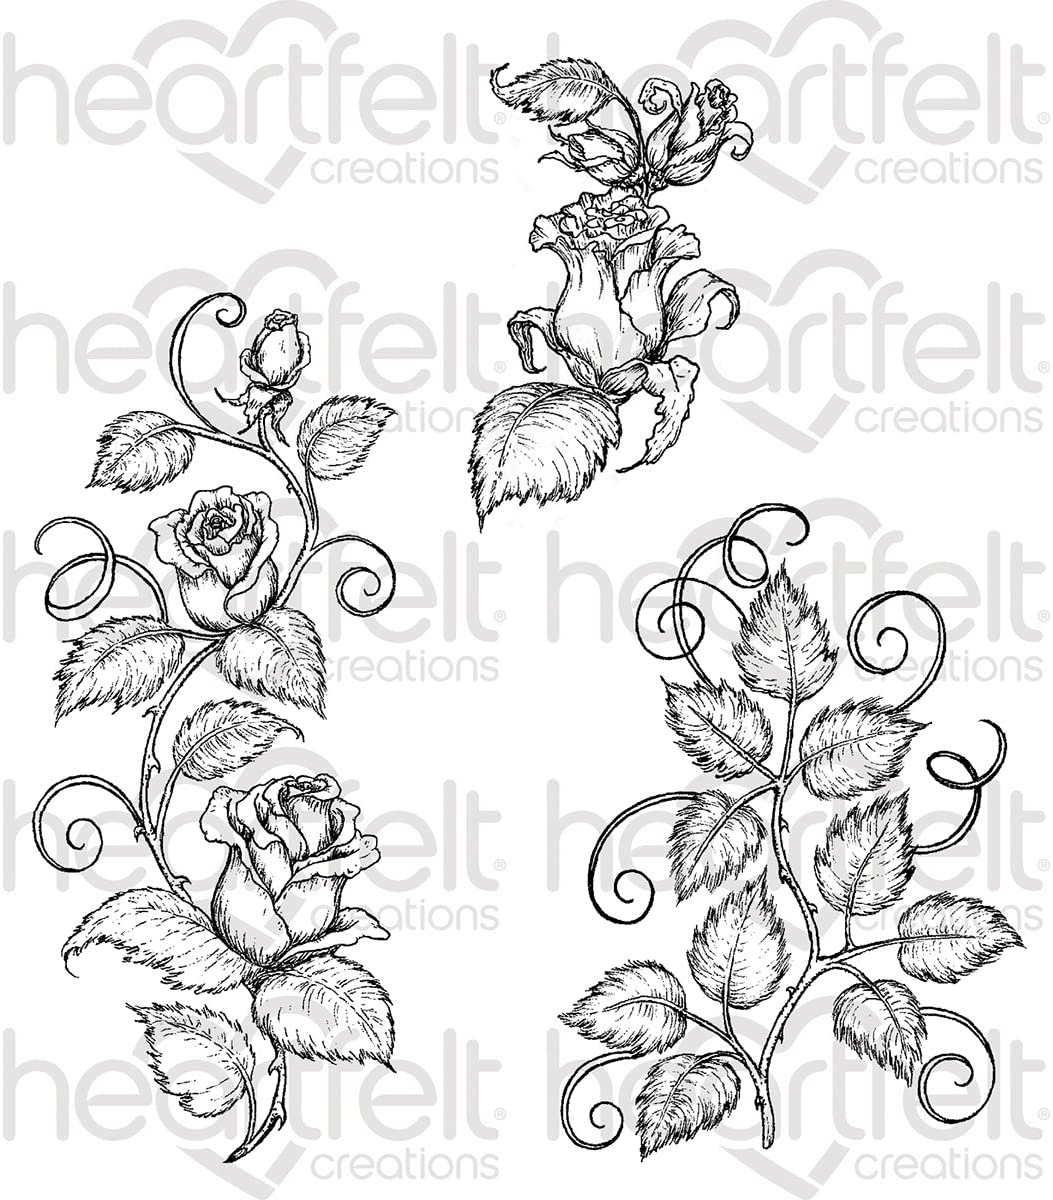 Creations Rose Vines Cling Rubber Stamp HCPC3753